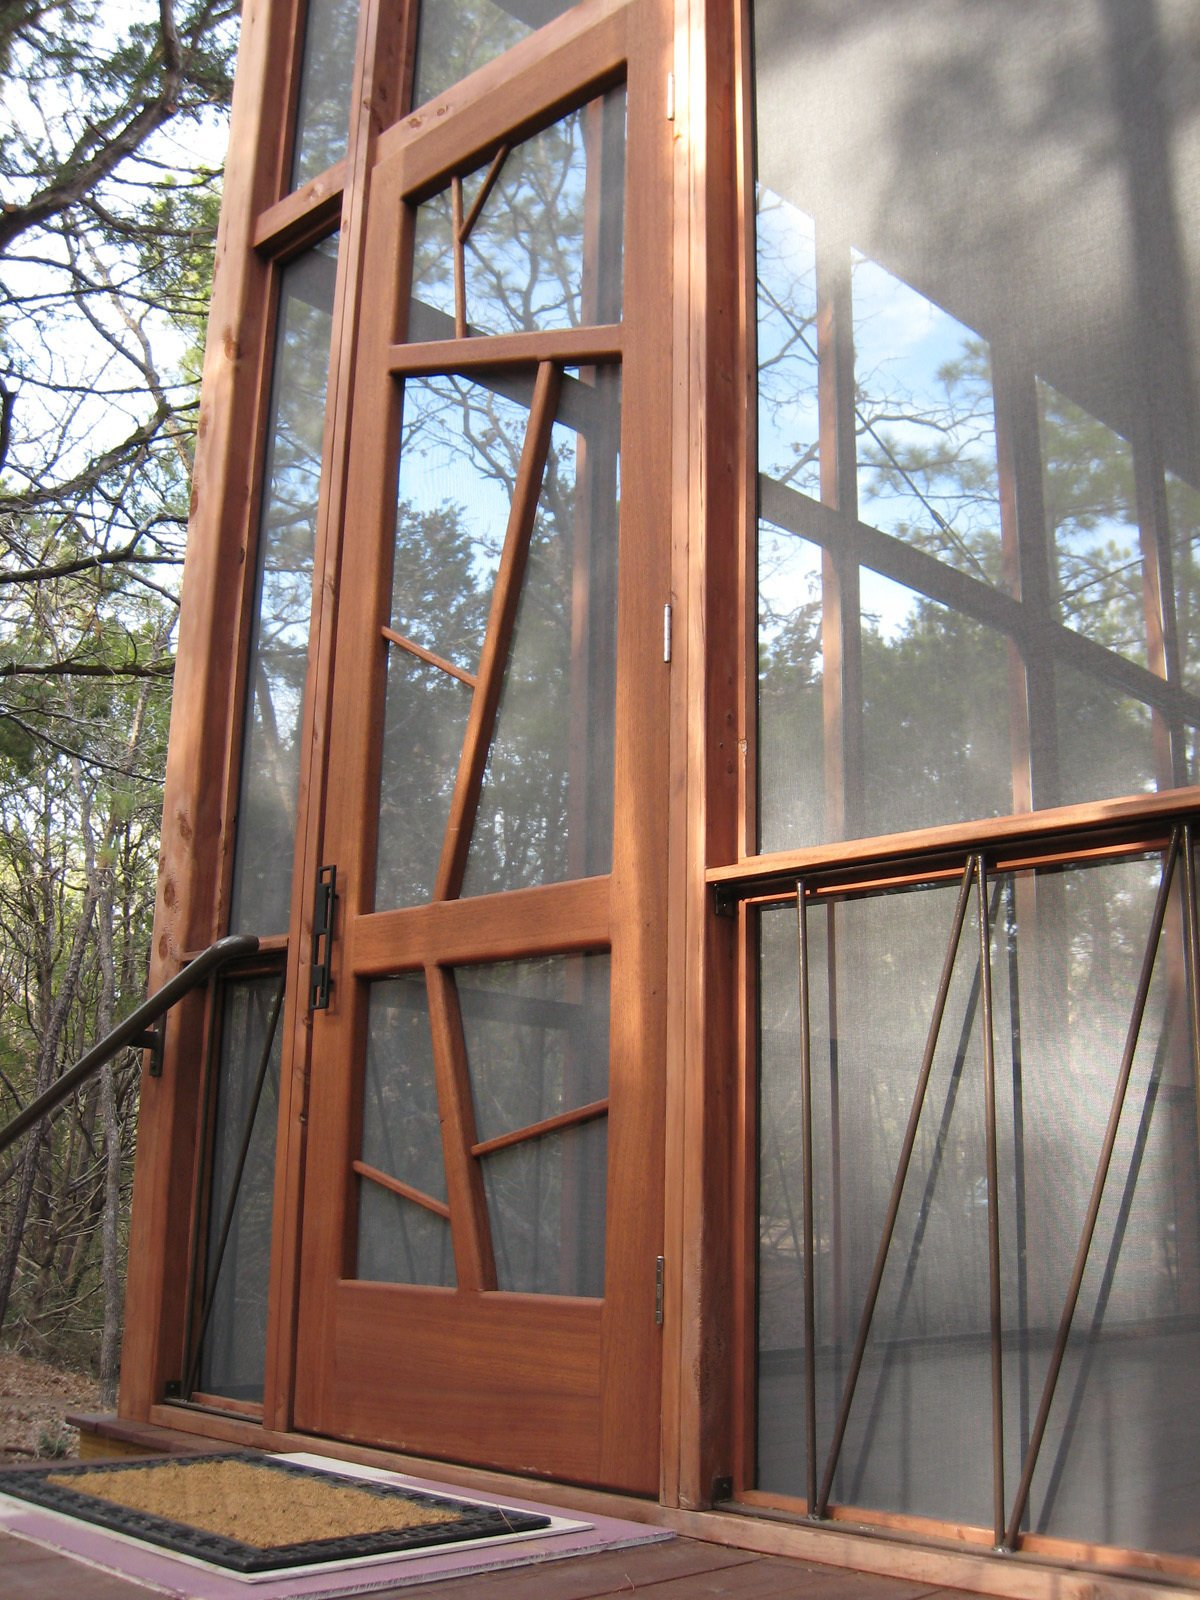 """The nine-by-three-foot mahogany entrance door is meant to evoke the surrounding trees. The iron handrails lining the base of the porch are a subtle architectural detail, as well as a support system to prevent the cabin from ever twisting or shifting """"like so many old Texas outbuildings,"""" says Panton.  Texas Bunkhouse by Erika Heet"""